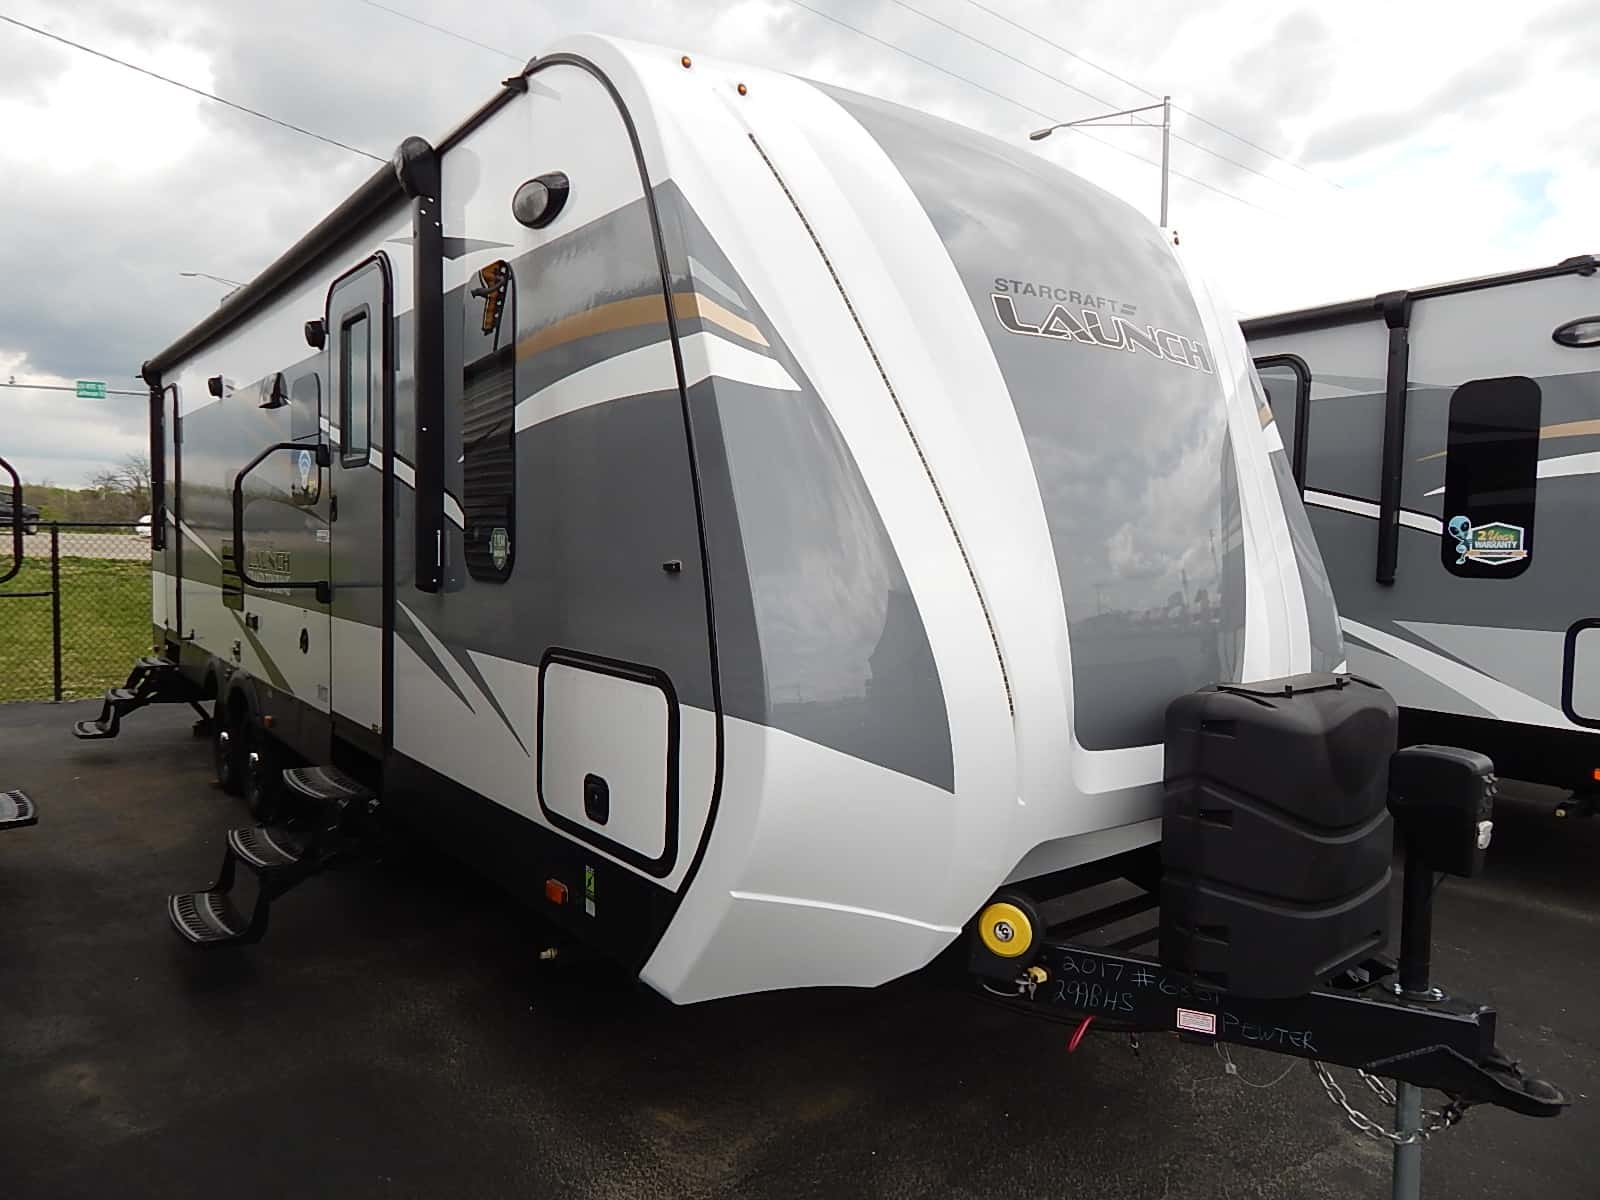 NEW 2017 STARCRAFT LAUNCH GRAND TOURING 299BHS - Rick's RV Center